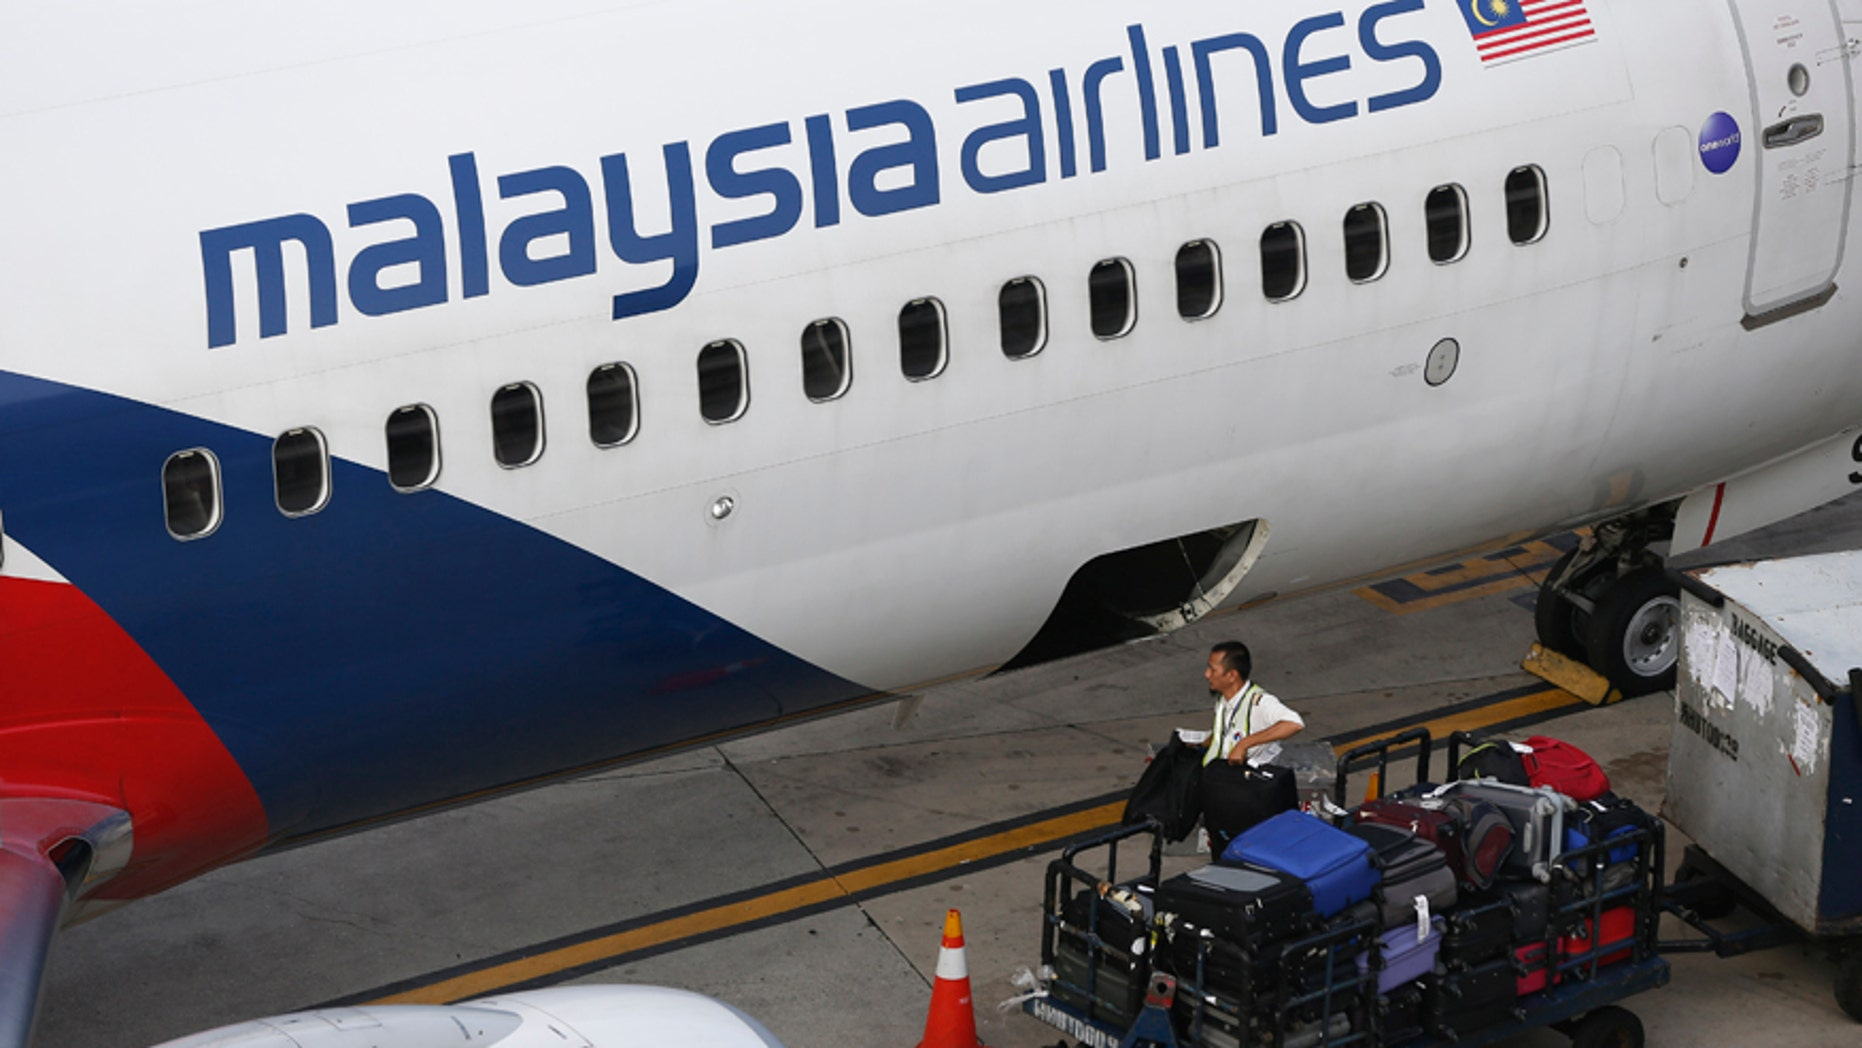 A Malaysia Airlines ground staff member unloads luggage from a plane at Kuala Lumpur International Airport in Sepang, Malaysia Monday, June 1, 2015.